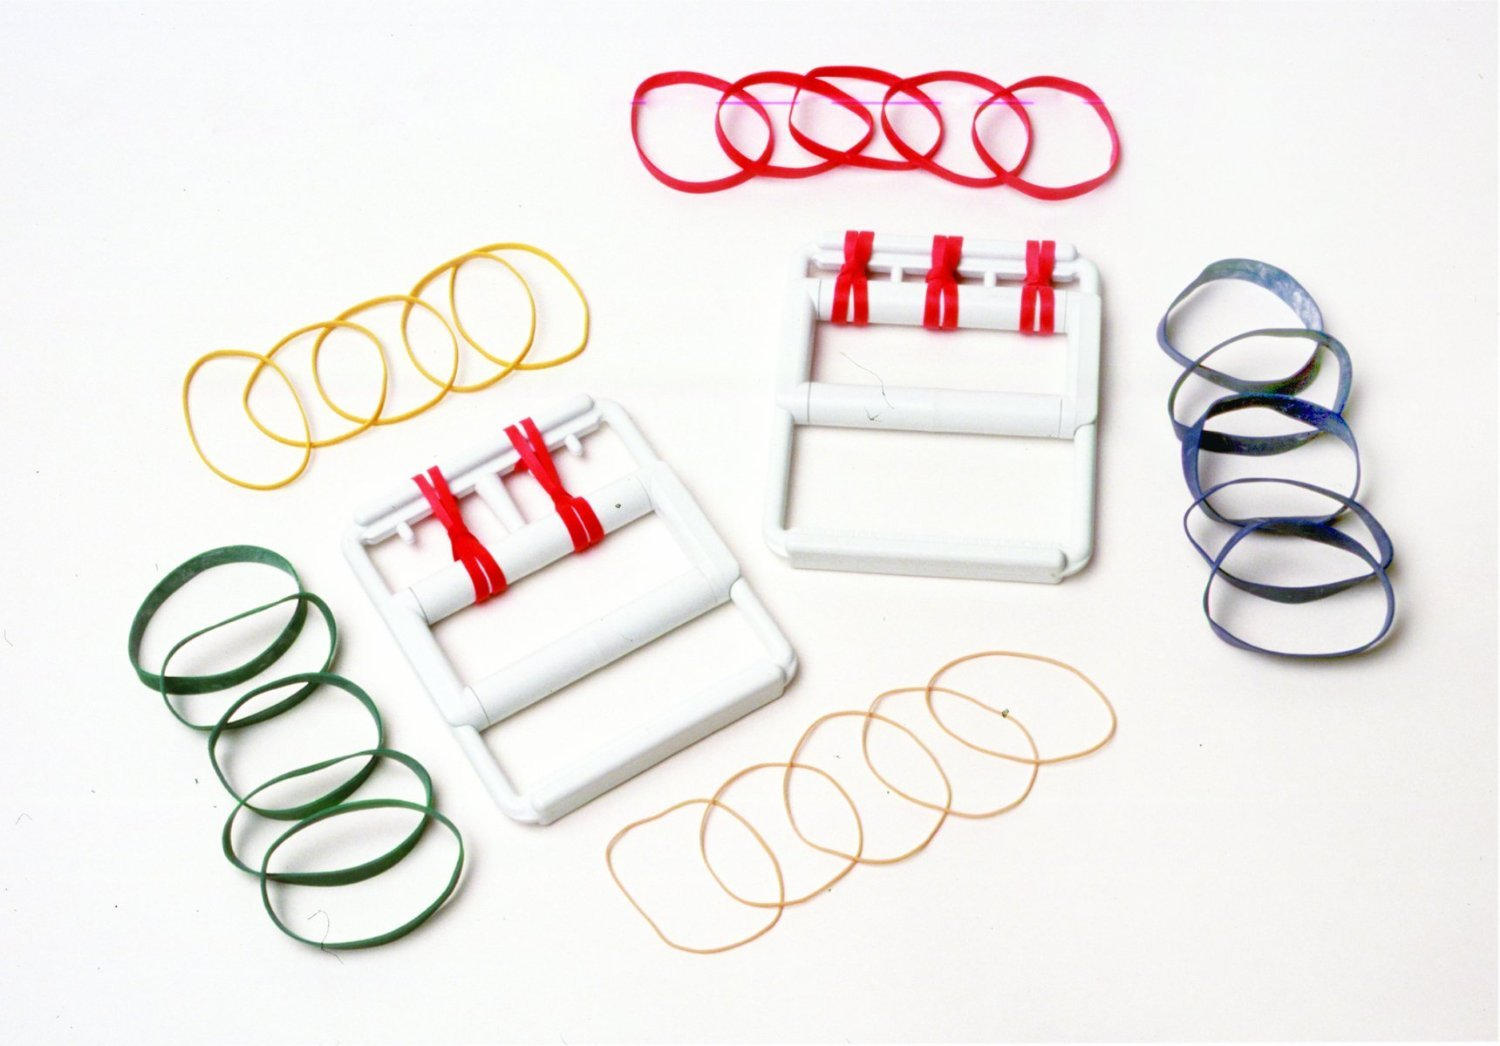 Cando Rubber Band Hand Exerciser - with 25 bands (5 each color) Latex-Free - 50 Sets